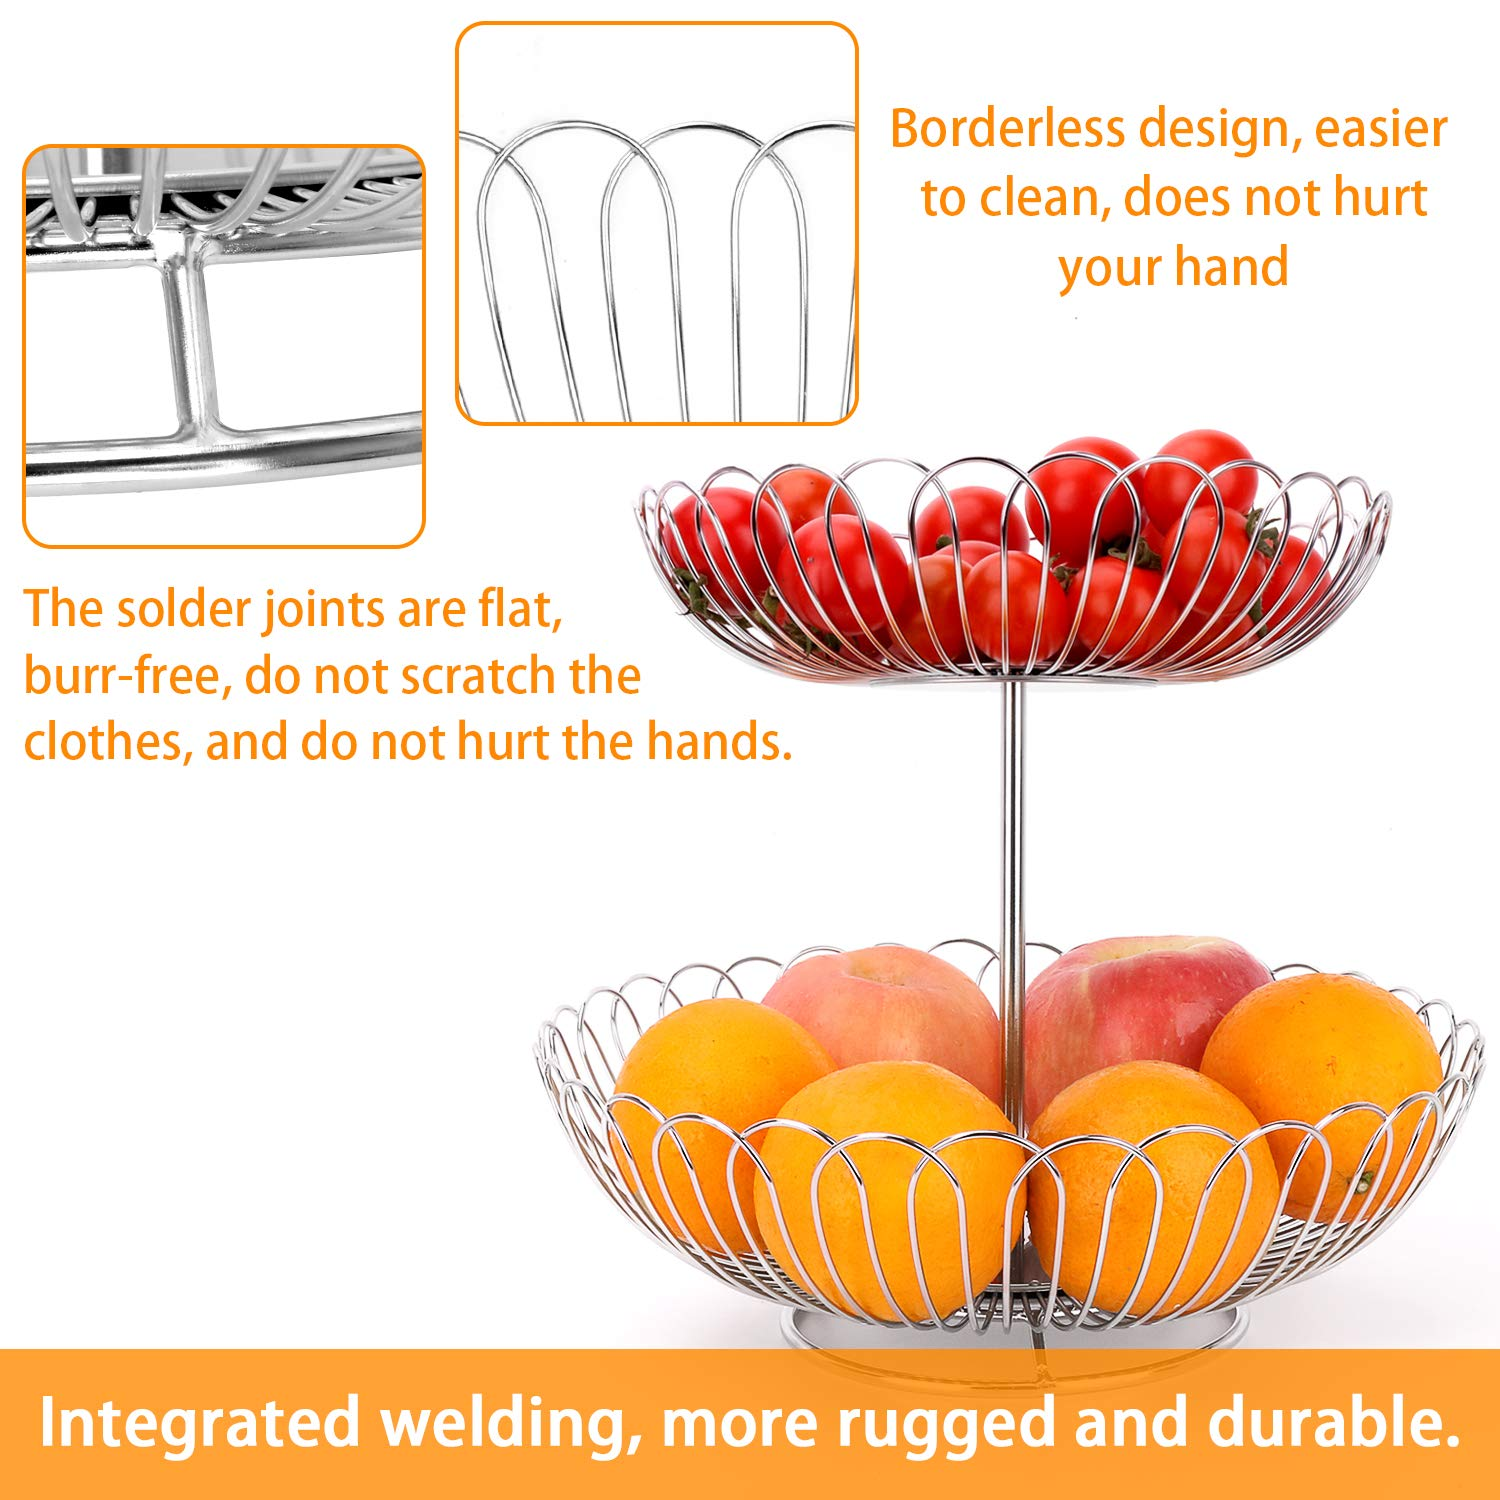 Stainless Steel 2 Tier Wire Fruit Basket Bowl for Kitchen Counter Stand with Bread by LANEJOY (Image #5)